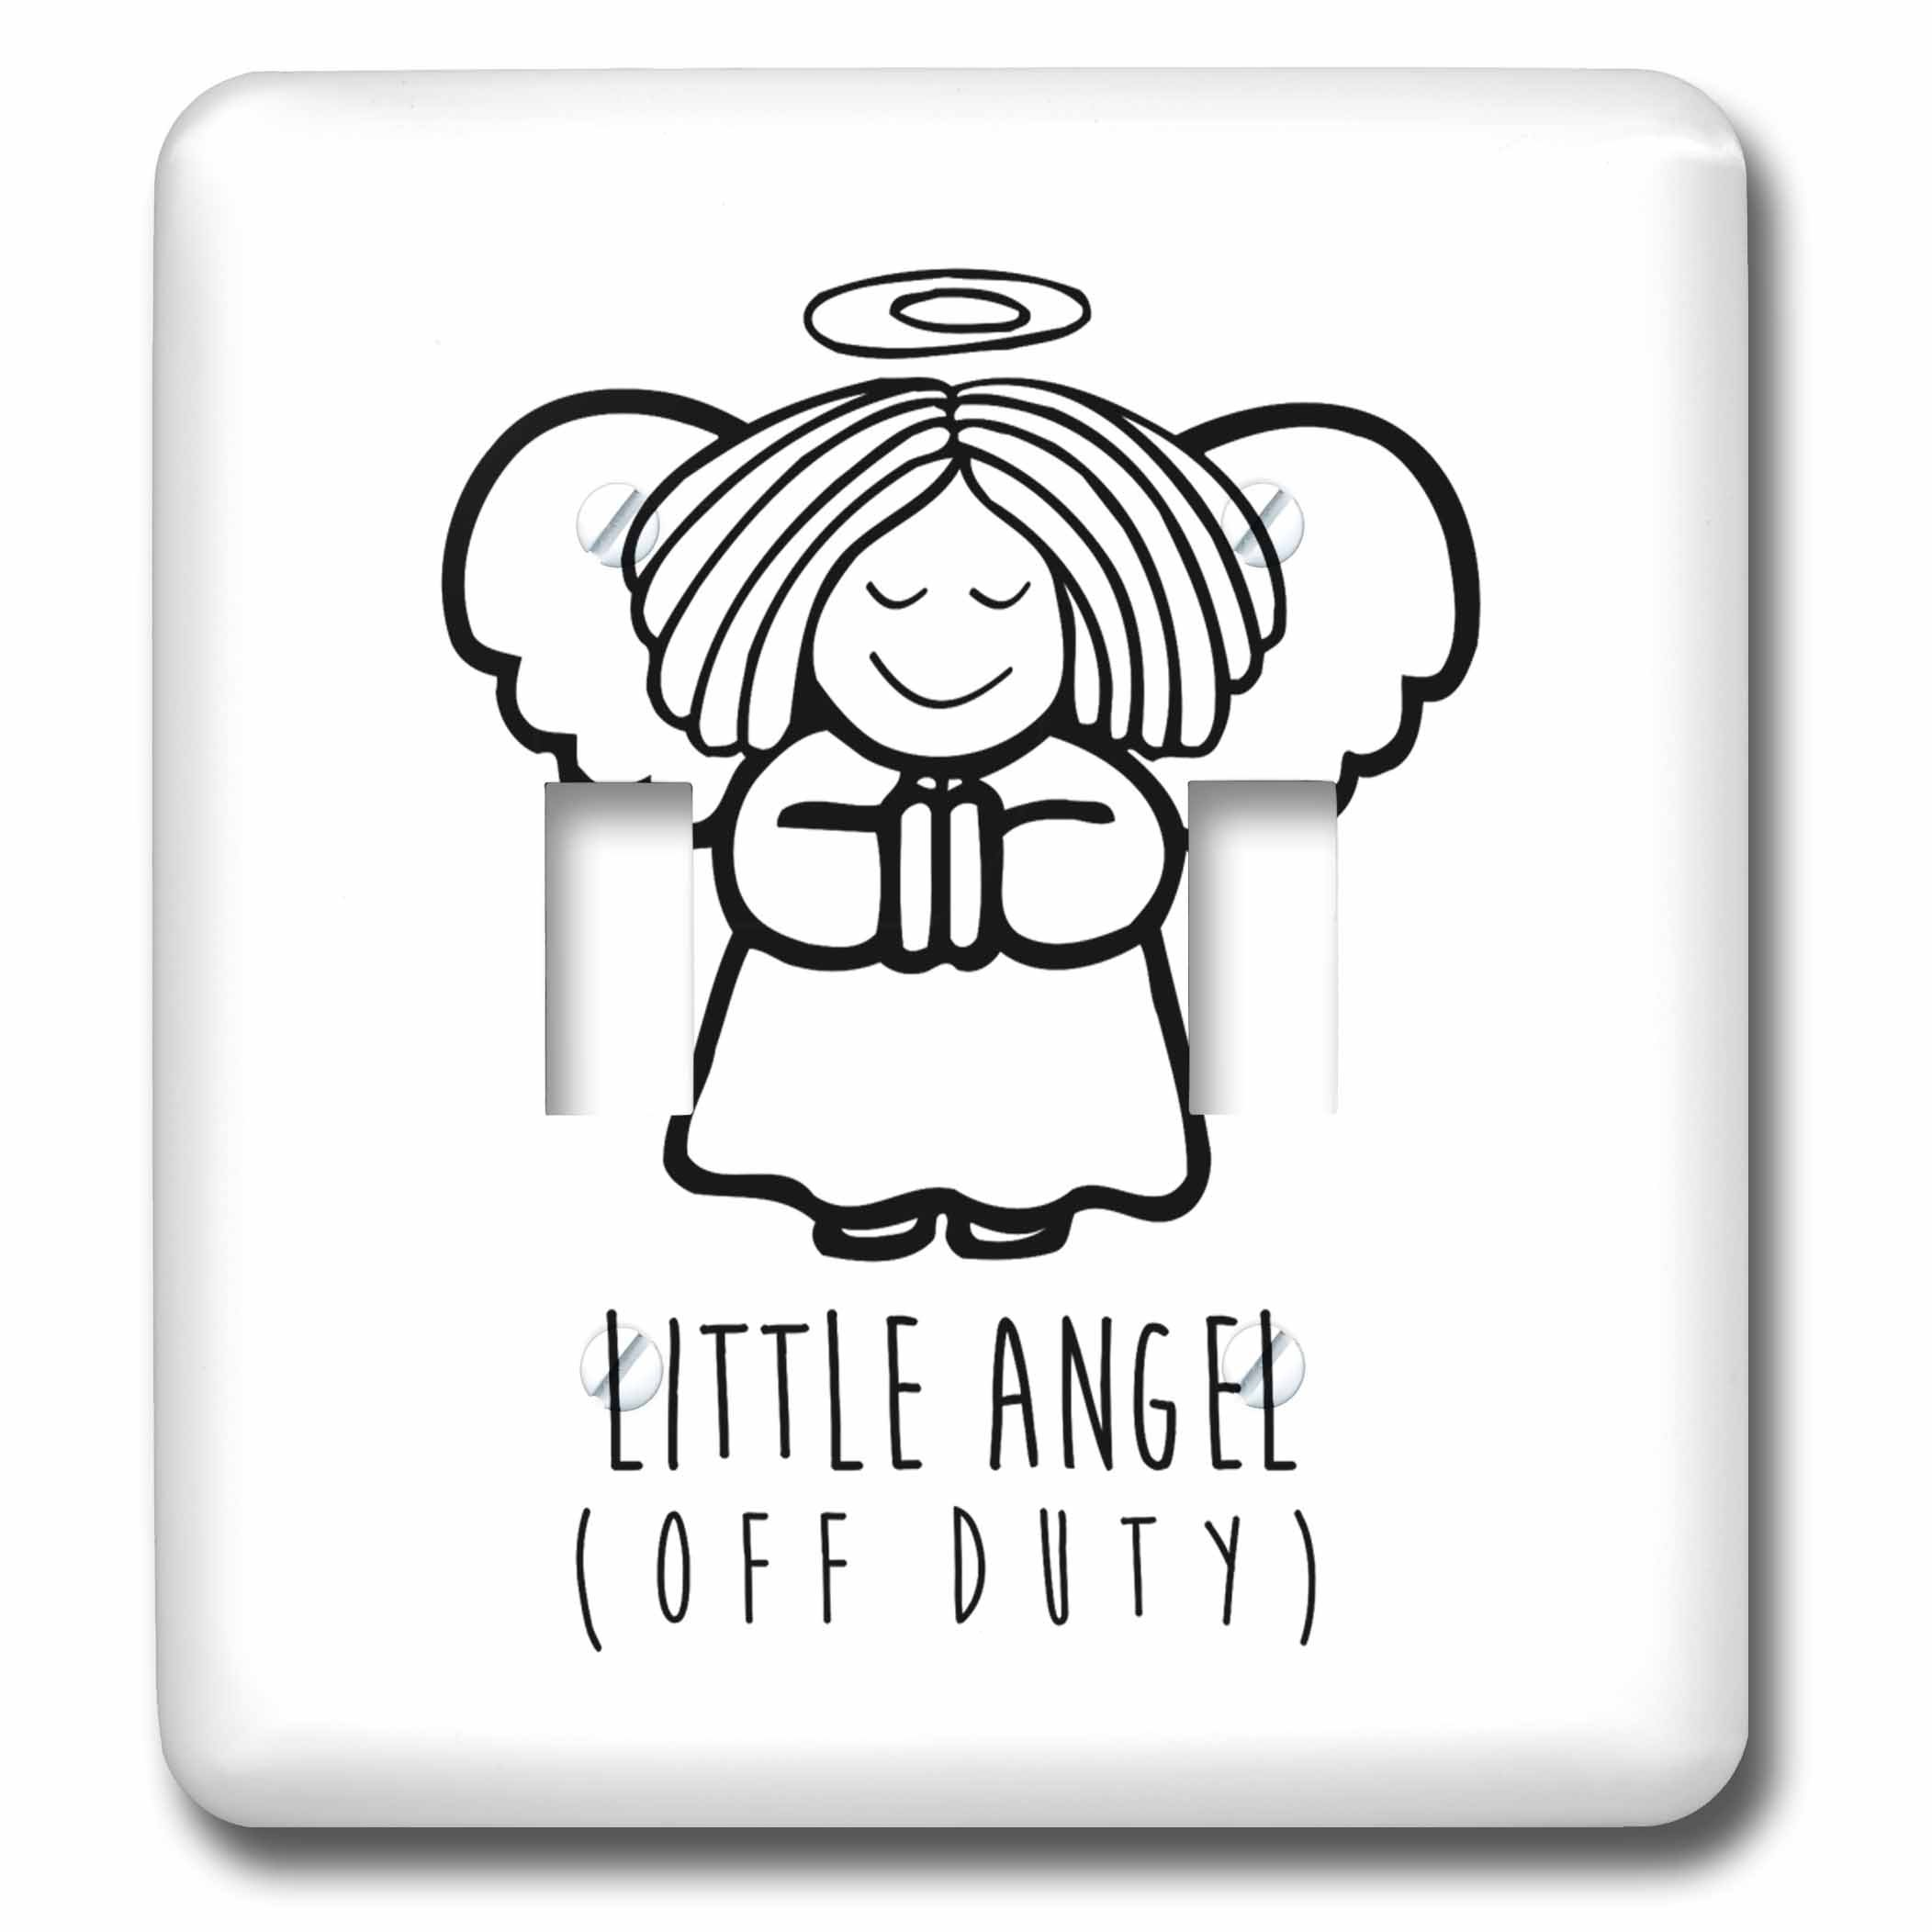 3dRose Russ Billington Designs - Little Angel- Off Duty- Cute Angel drawing in Black and White - Light Switch Covers - double toggle switch (lsp_261898_2) by 3dRose